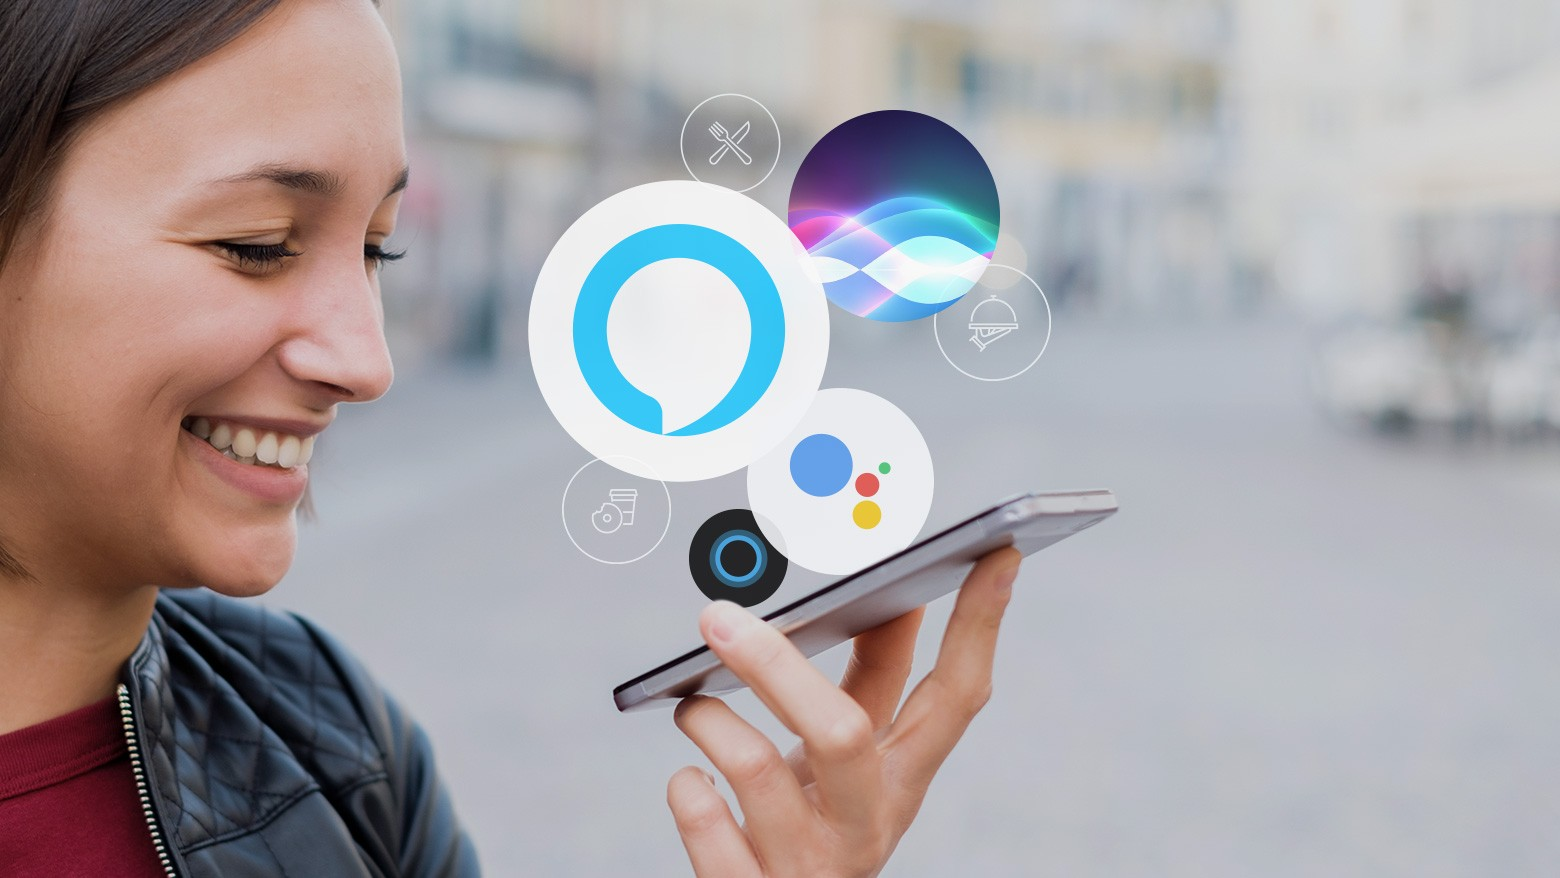 yext.com - New Insights Show Impact of Voice Search on the Food Industry